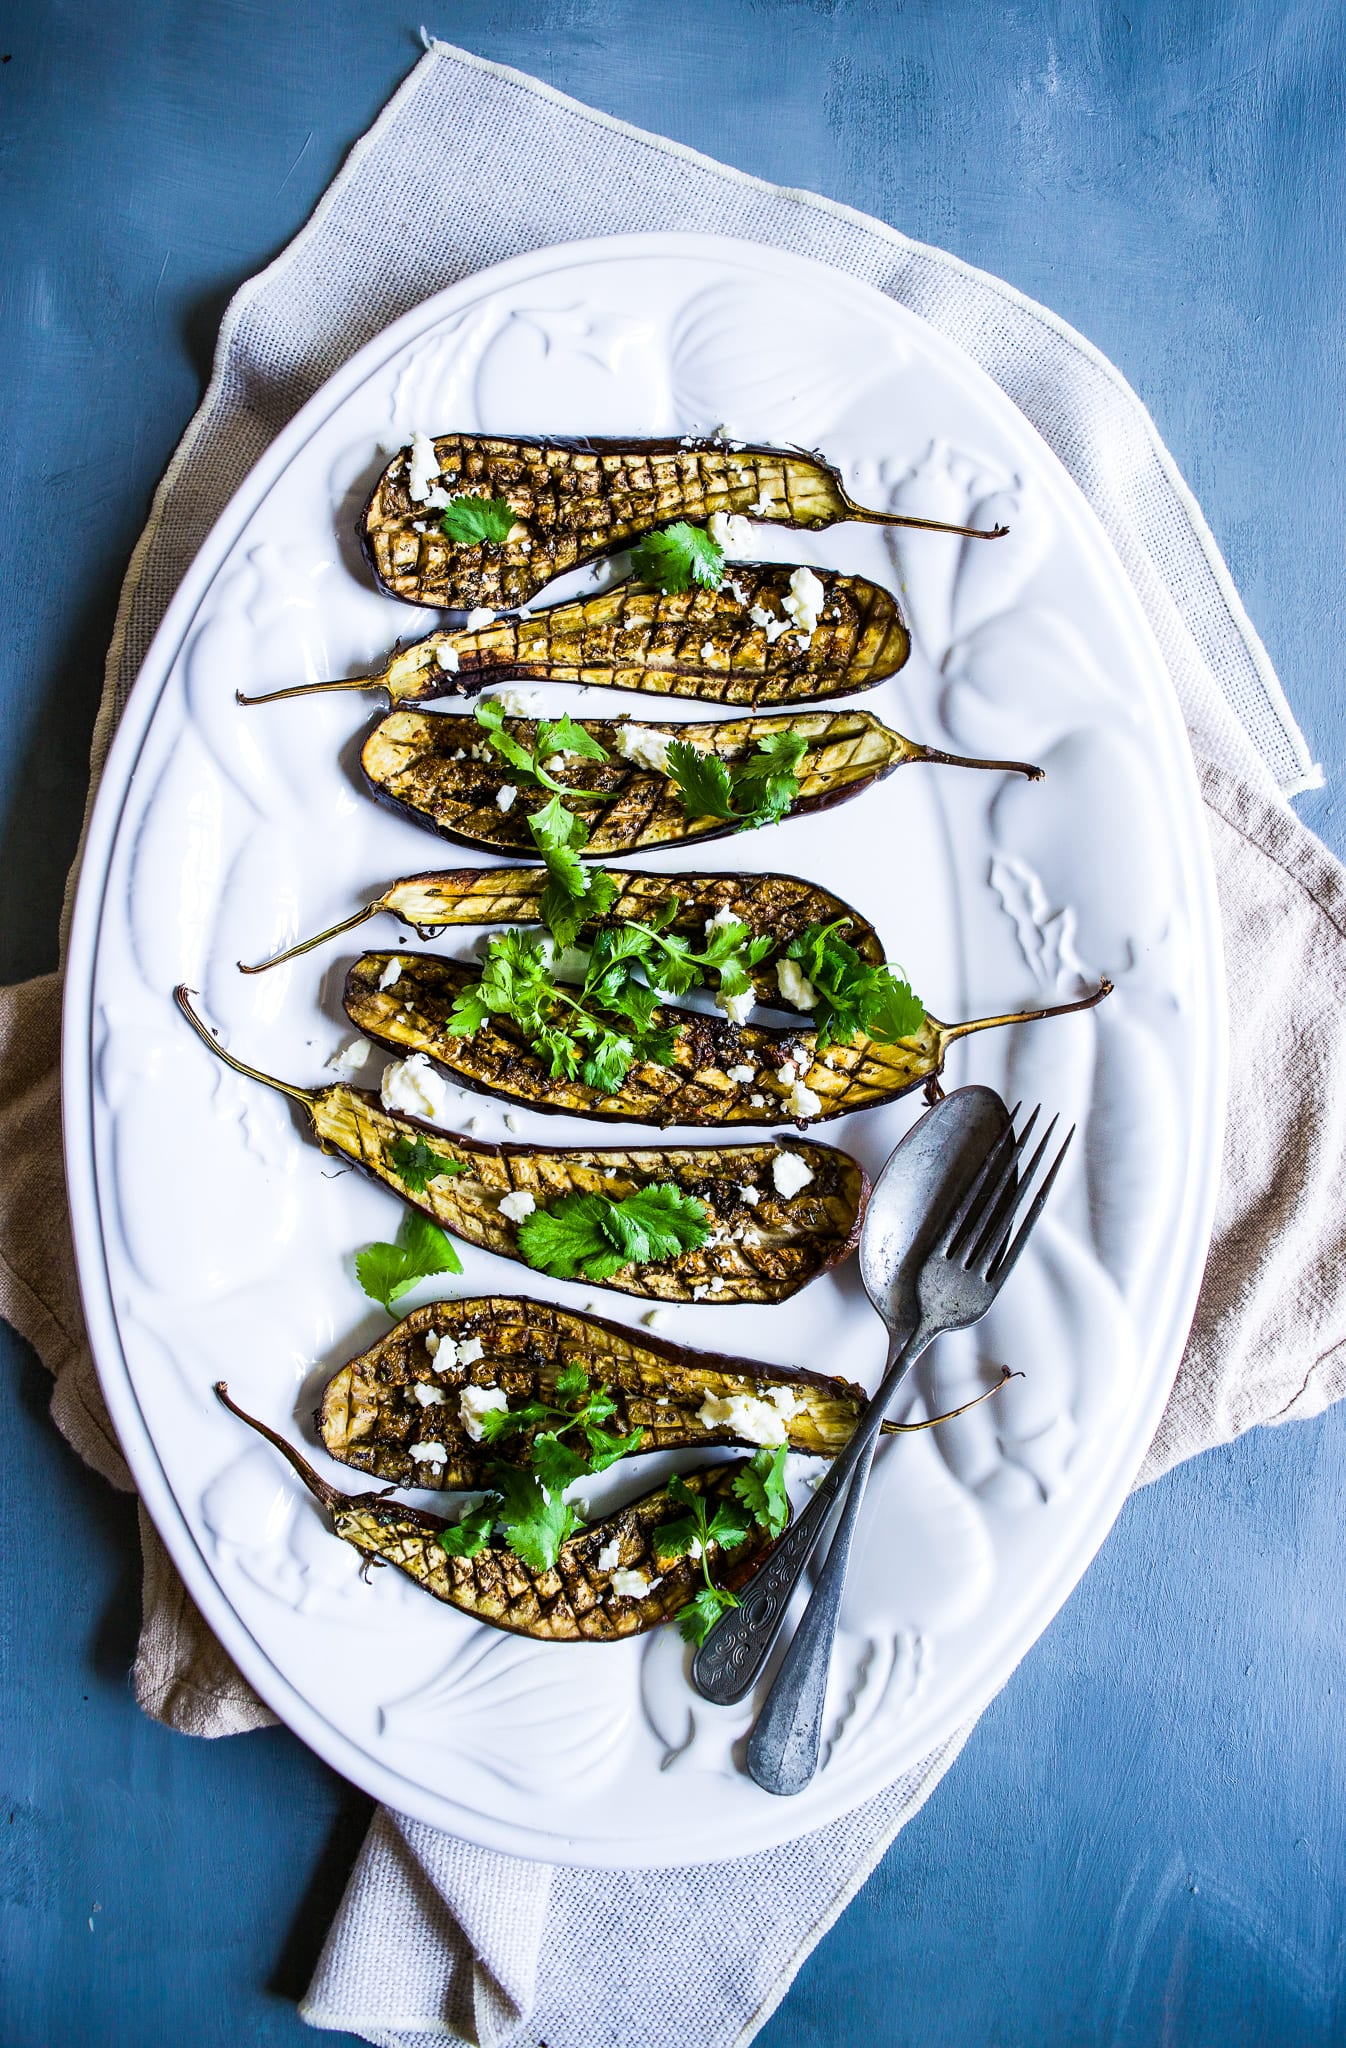 How to Make Eggplant Taste Delicious Every time